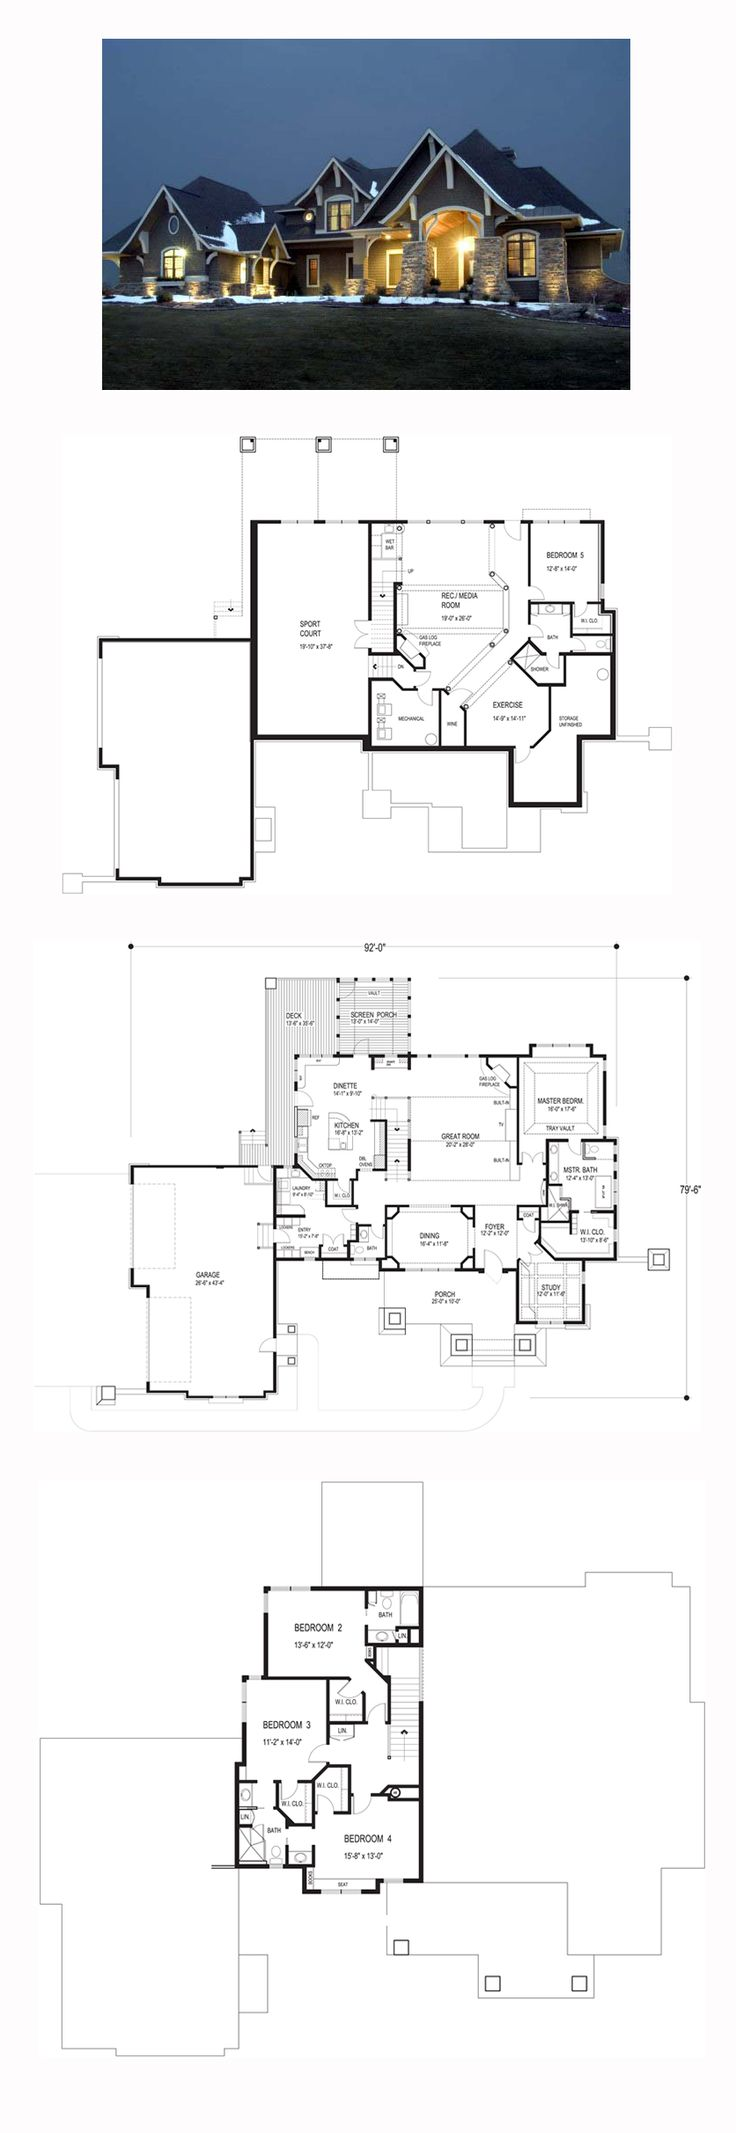 Craftsman House Plan 92351 | Total Living Area: 3651 sq. ft., 5 bedrooms and 4 bathrooms. This master-on-the-main design features a private study with a coffered ceiling, an elegant dining room and spacious great room with a corner fireplace. #craftsmanhome